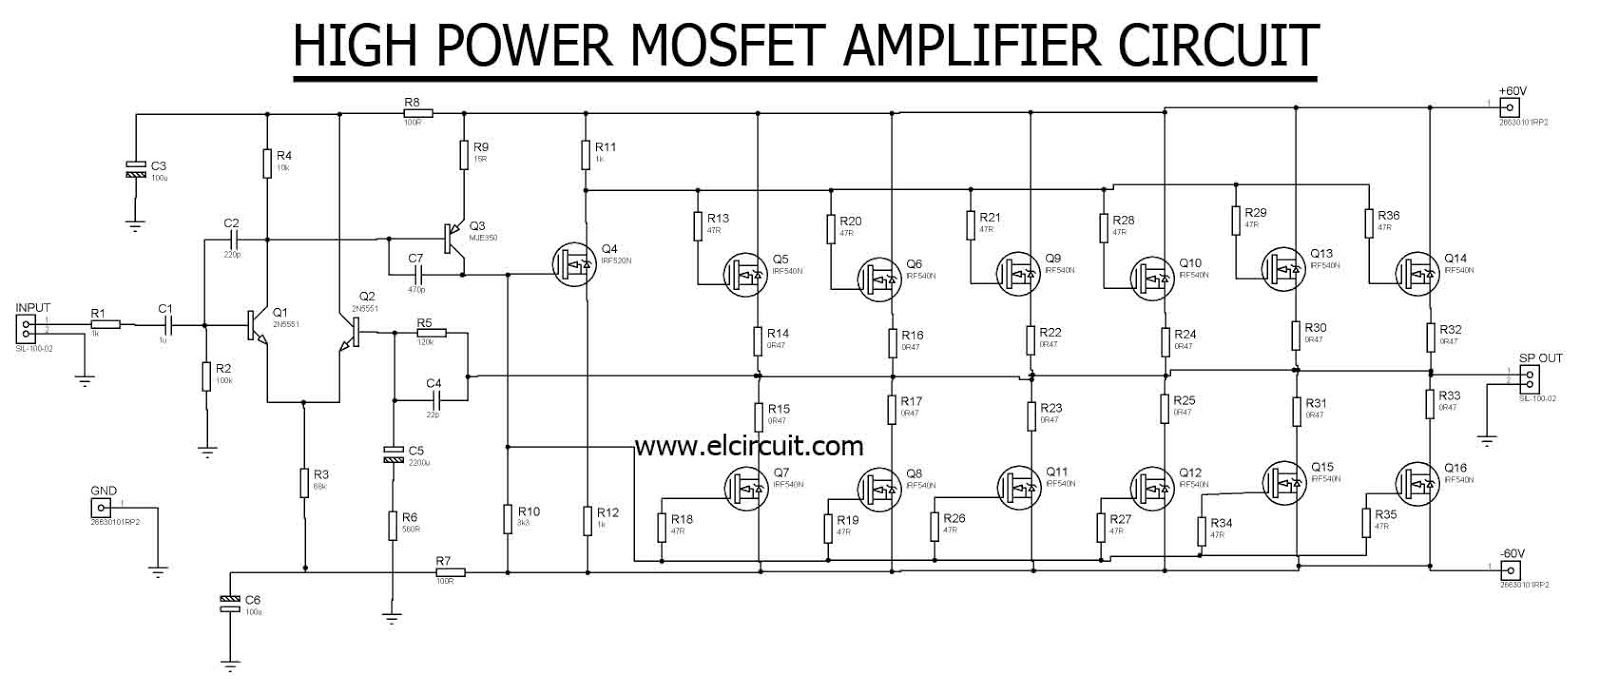 hight resolution of high power mosfet amplifier irf540n in 2019 circuit circuit high power lifier circuit diagram besides h bridge inverter circuit